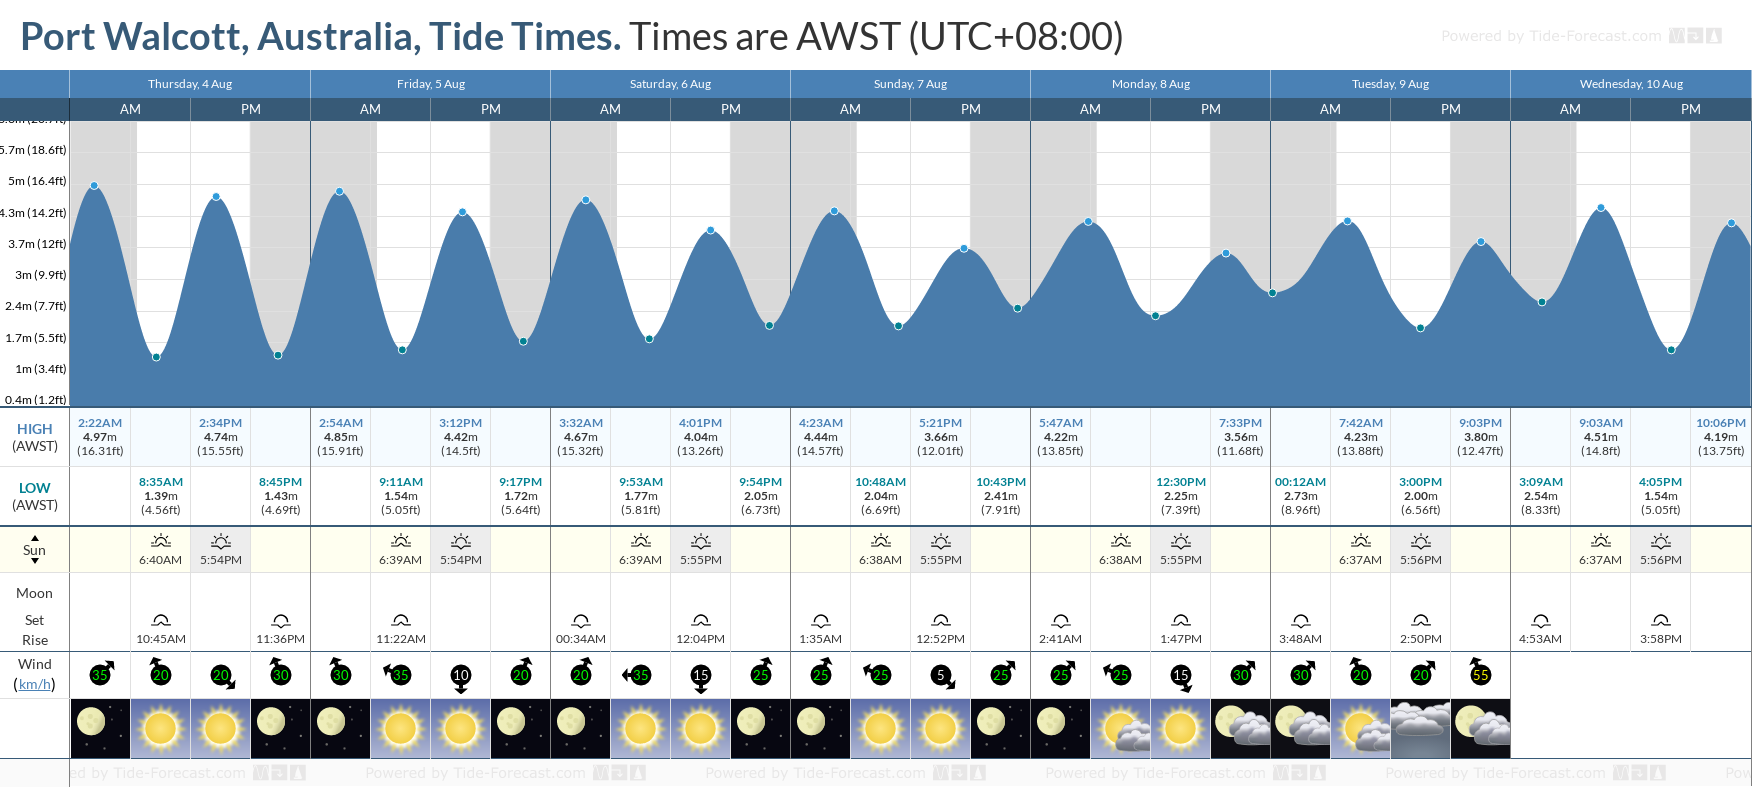 Port Walcott, Australia Tide Chart including high and low tide tide times for the next 7 days